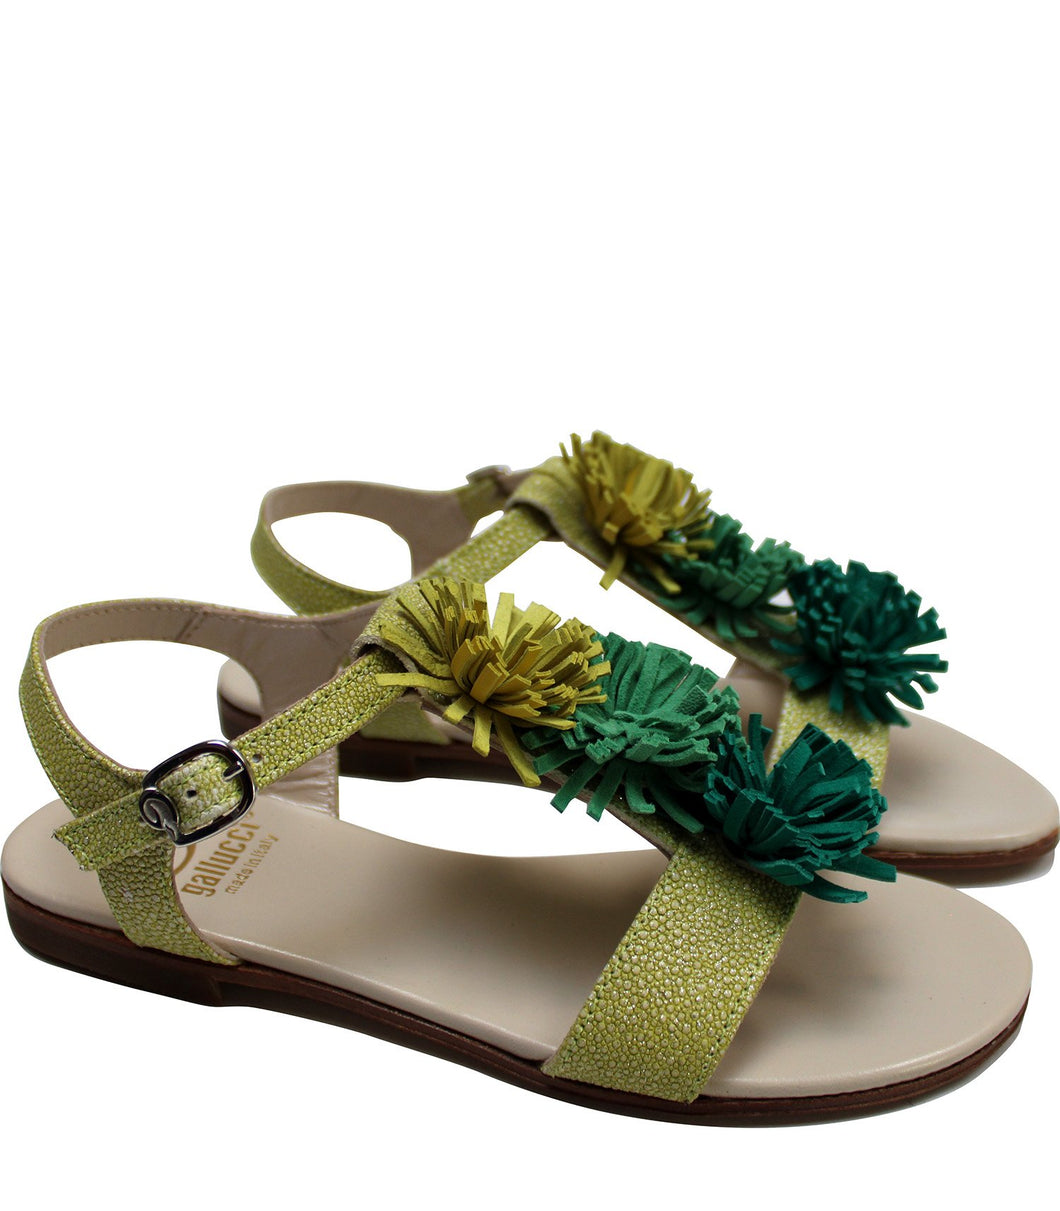 Fringe sandals in lime leather